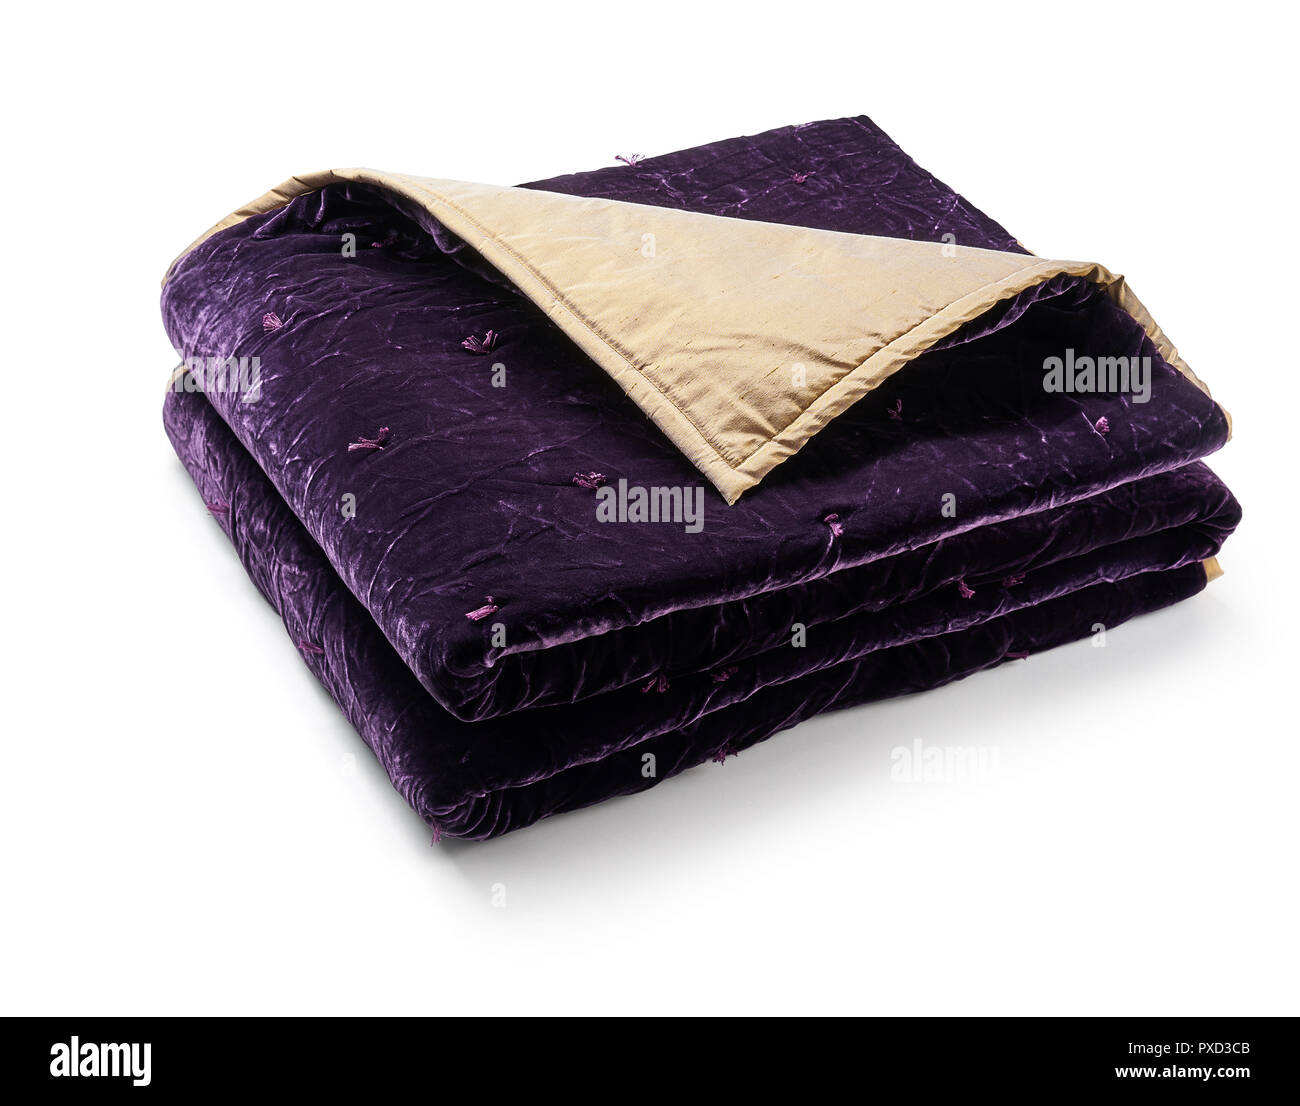 Purple blanket made of velor fabric, neatly folded, isolated on white background Stock Photo